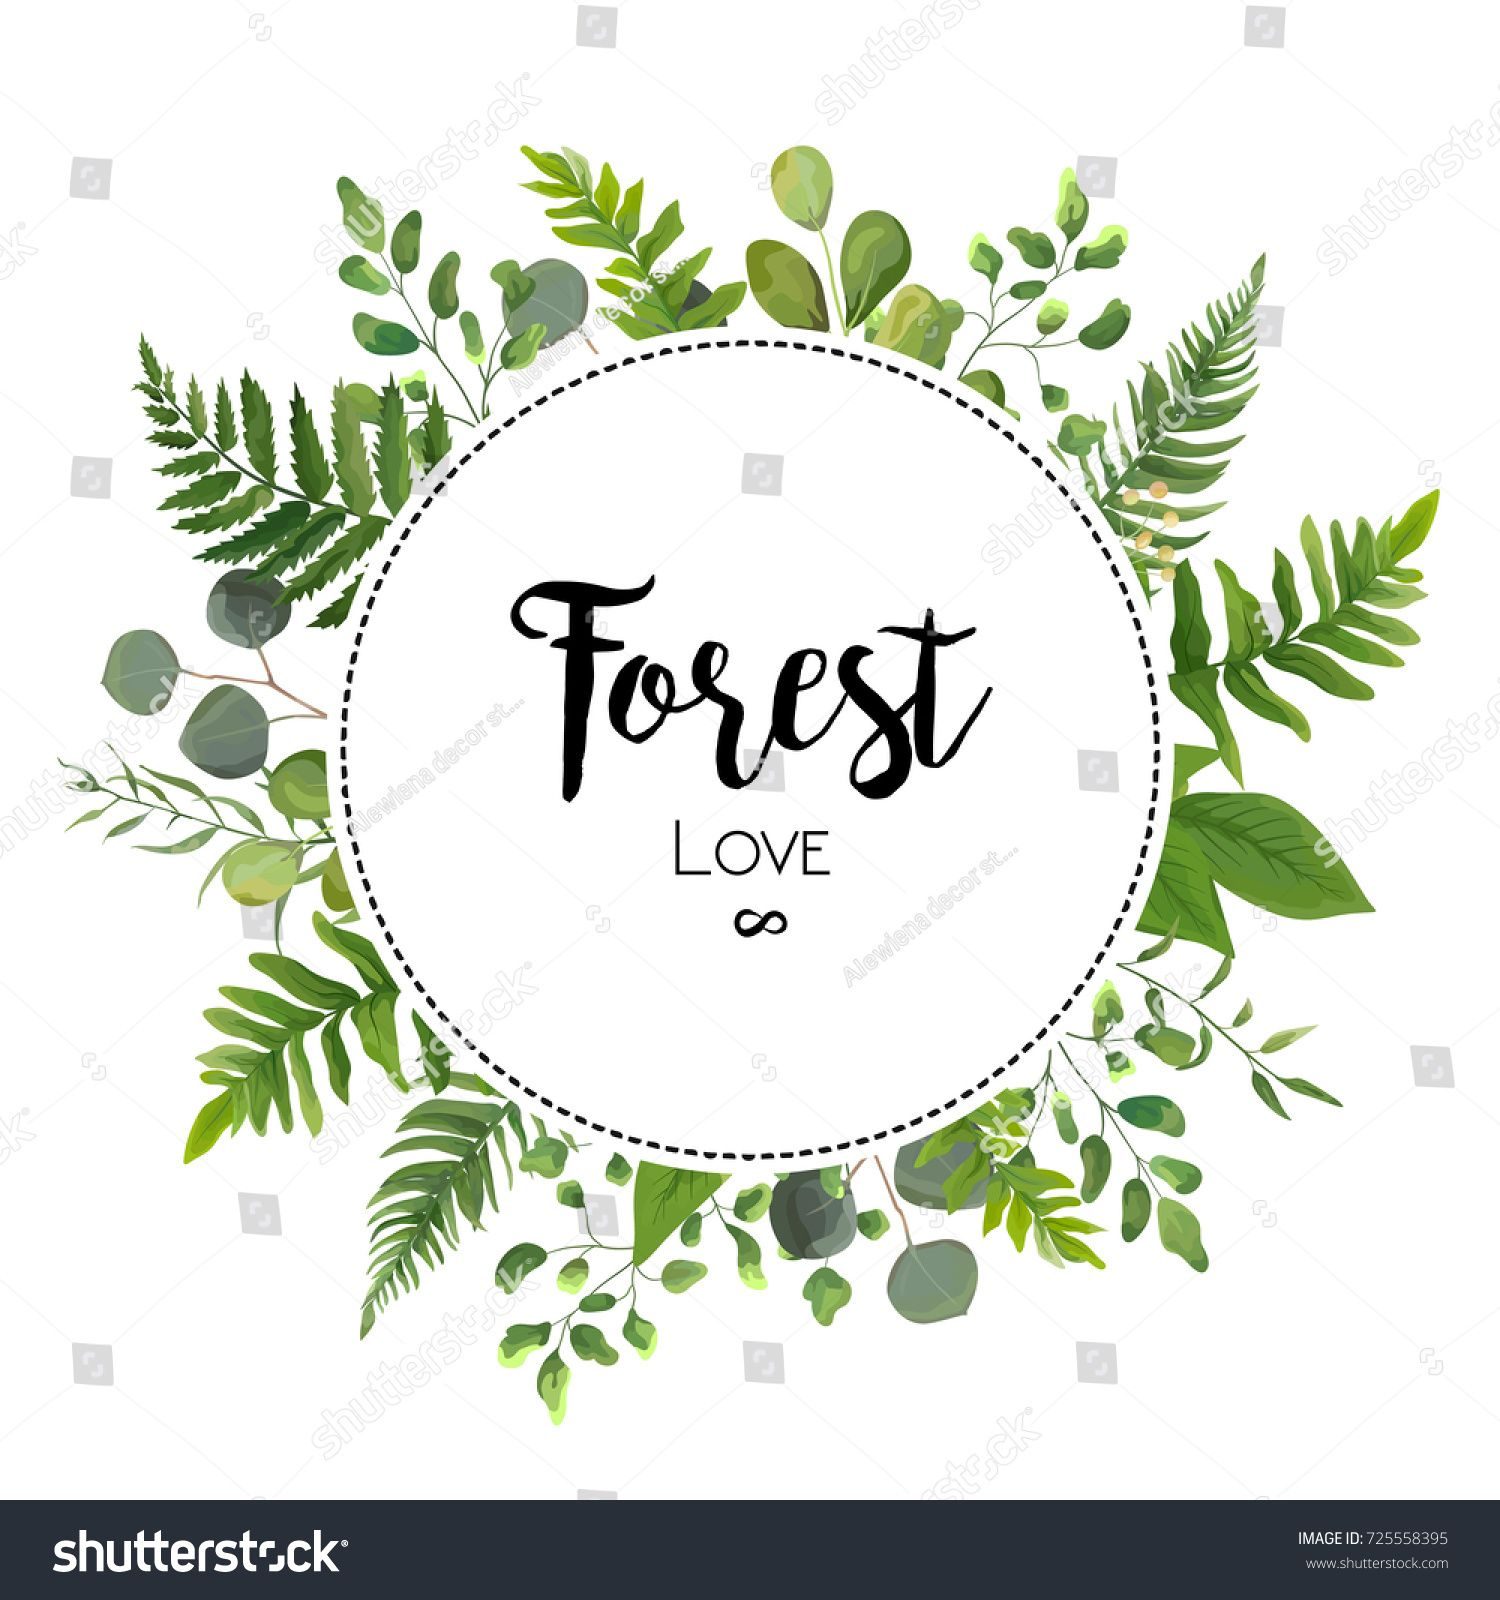 1500x1600 Floral Vector Invite Card Design With Green Eucalyptus Fern Leaves